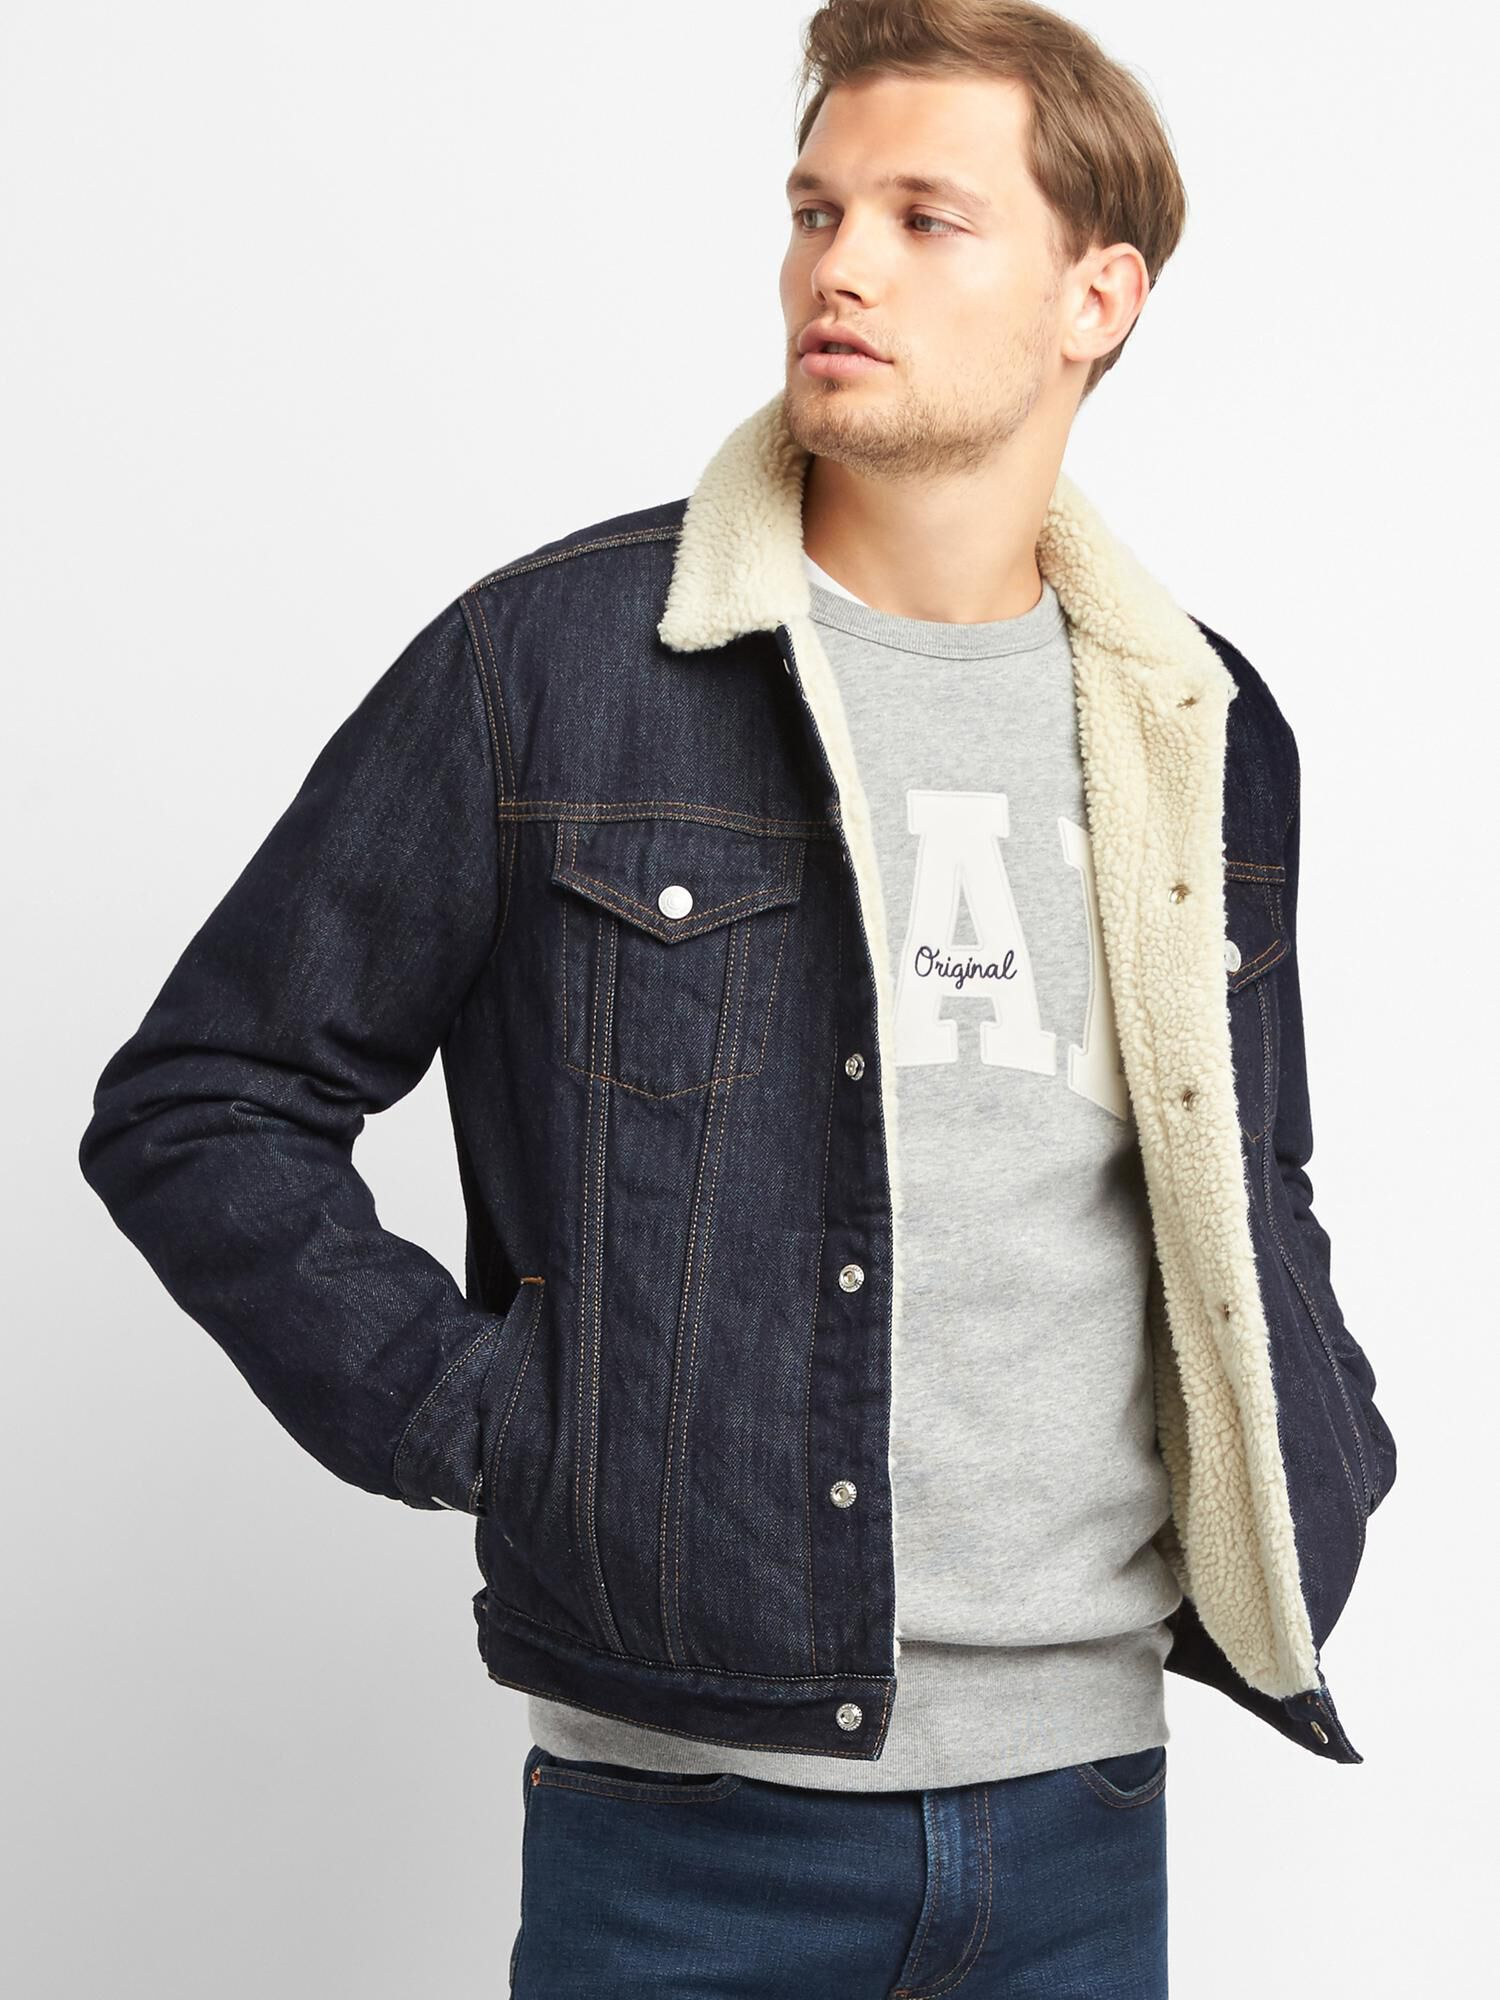 Communication on this topic: 16 Sherpa-Lined Denim Jackets to Cosy Up , 16-sherpa-lined-denim-jackets-to-cosy-up/